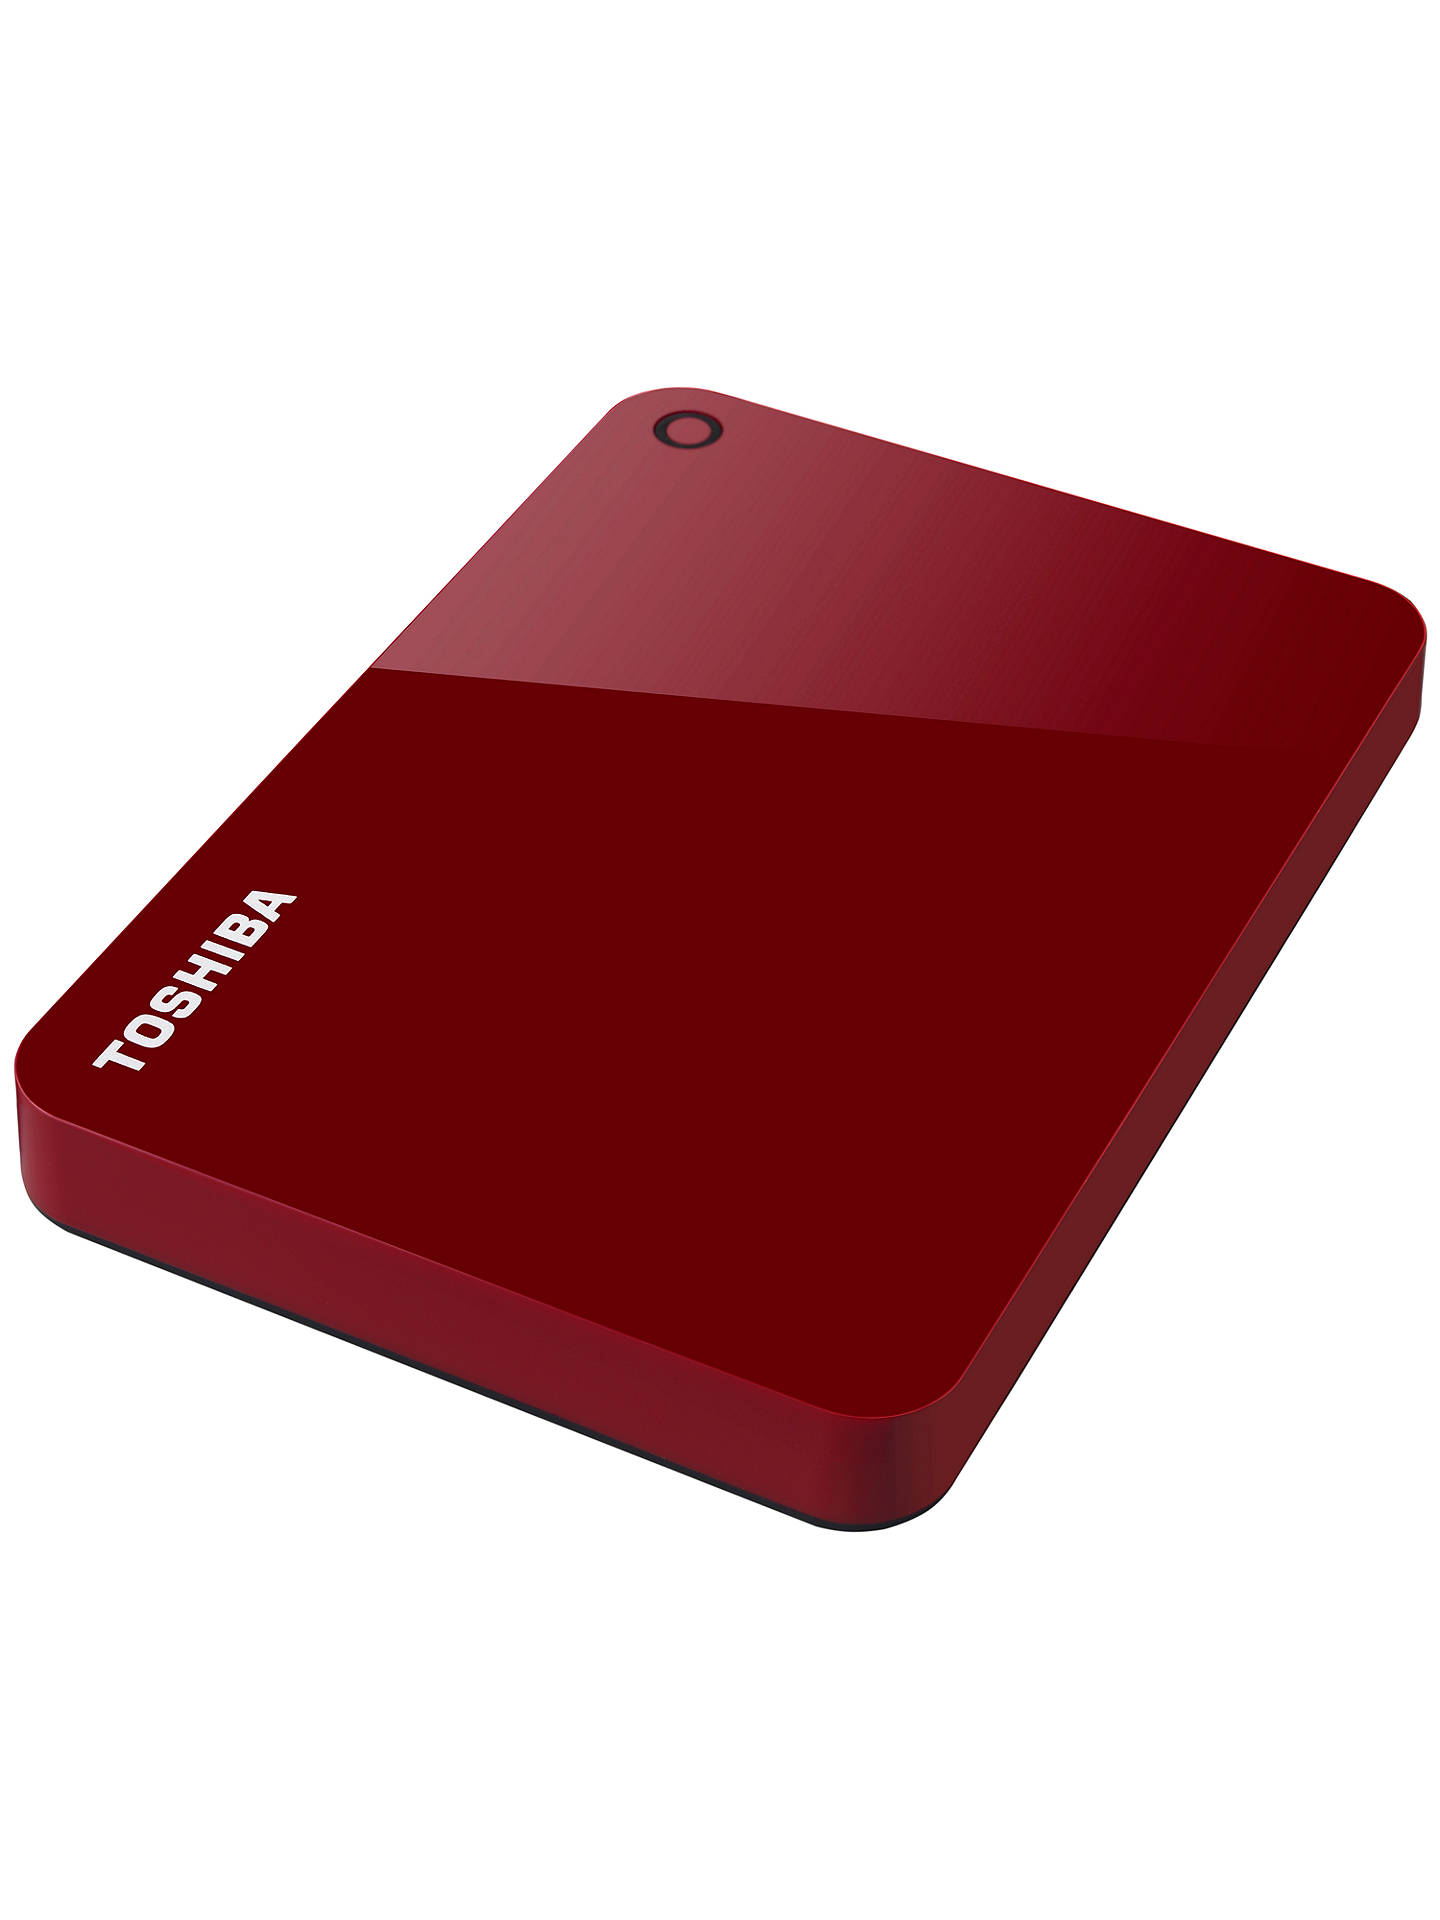 Buy Toshiba Canvio Advance, Portable Hard Drive, USB 3.0, 1TB, Red Online at johnlewis.com